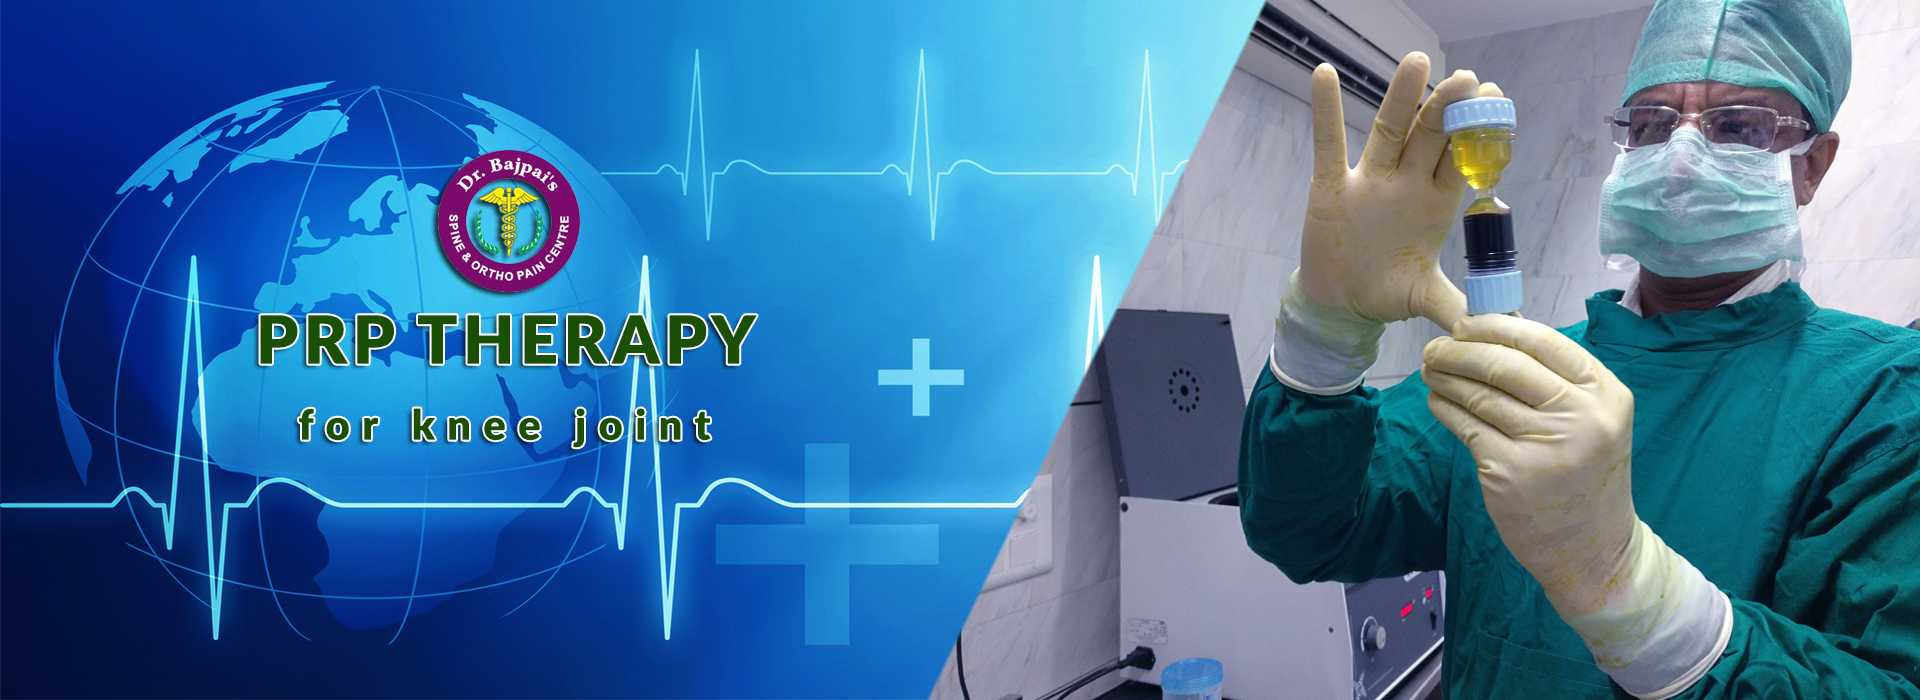 How to Avoid Knee Joint Replacement Surgery by Dr. Bajpai's